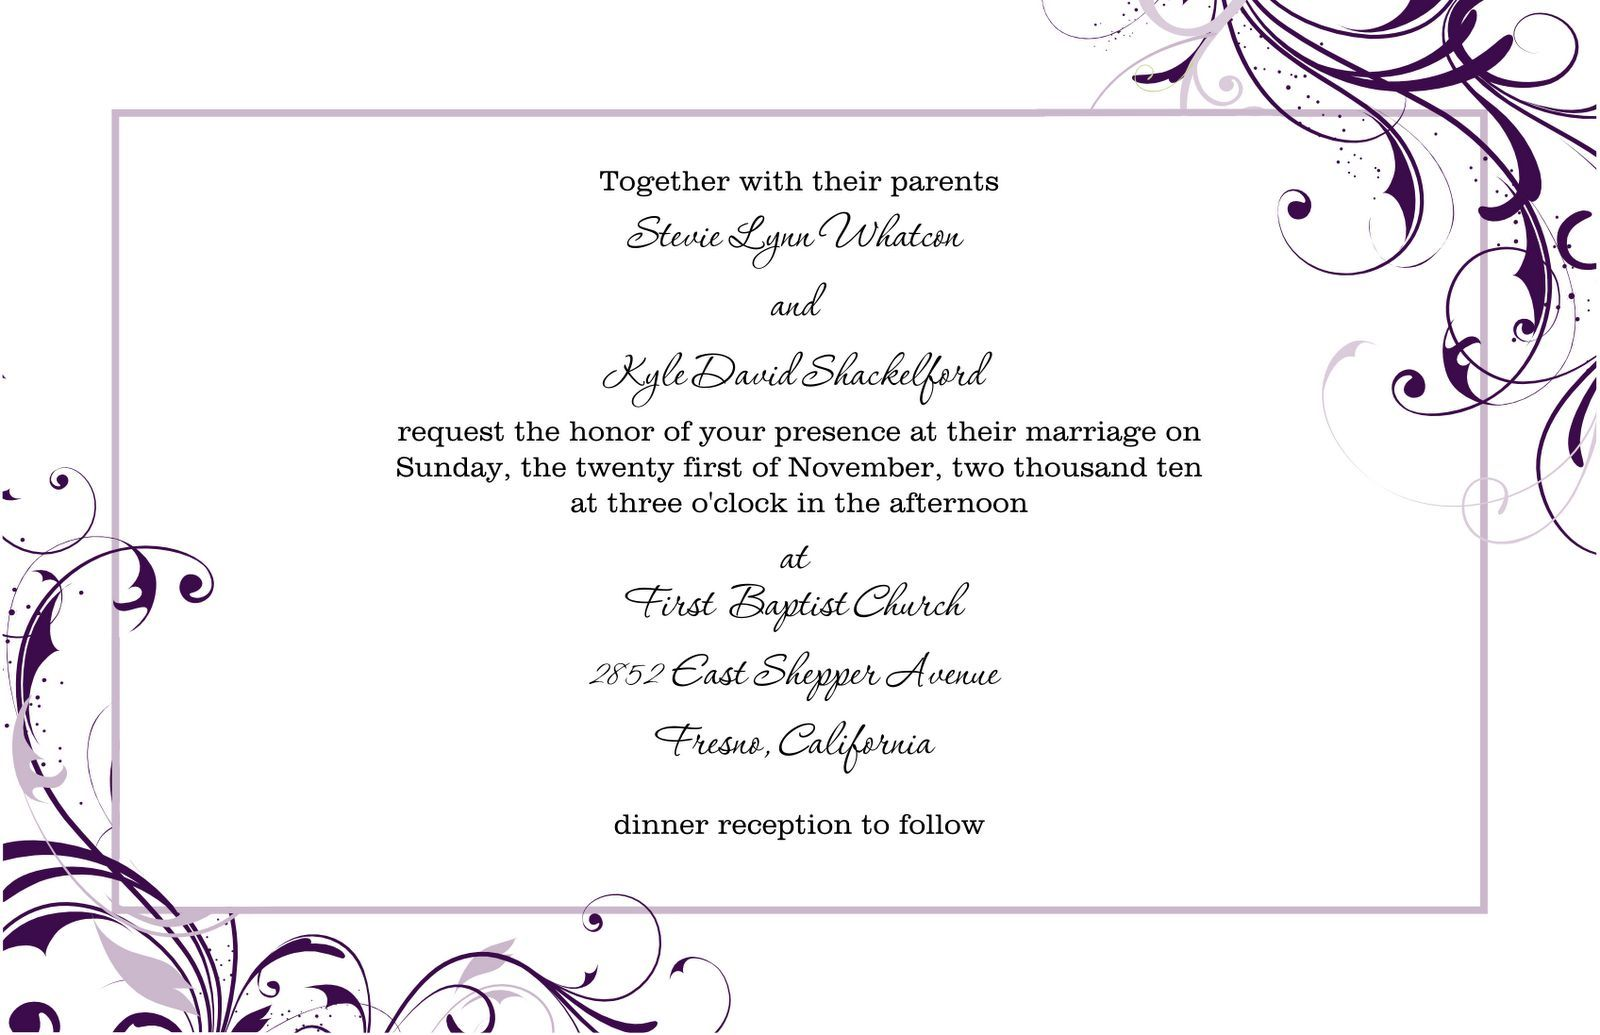 Free Blank Wedding Invitation Templates For Microsoft Word - Make your own wedding invitations free templates